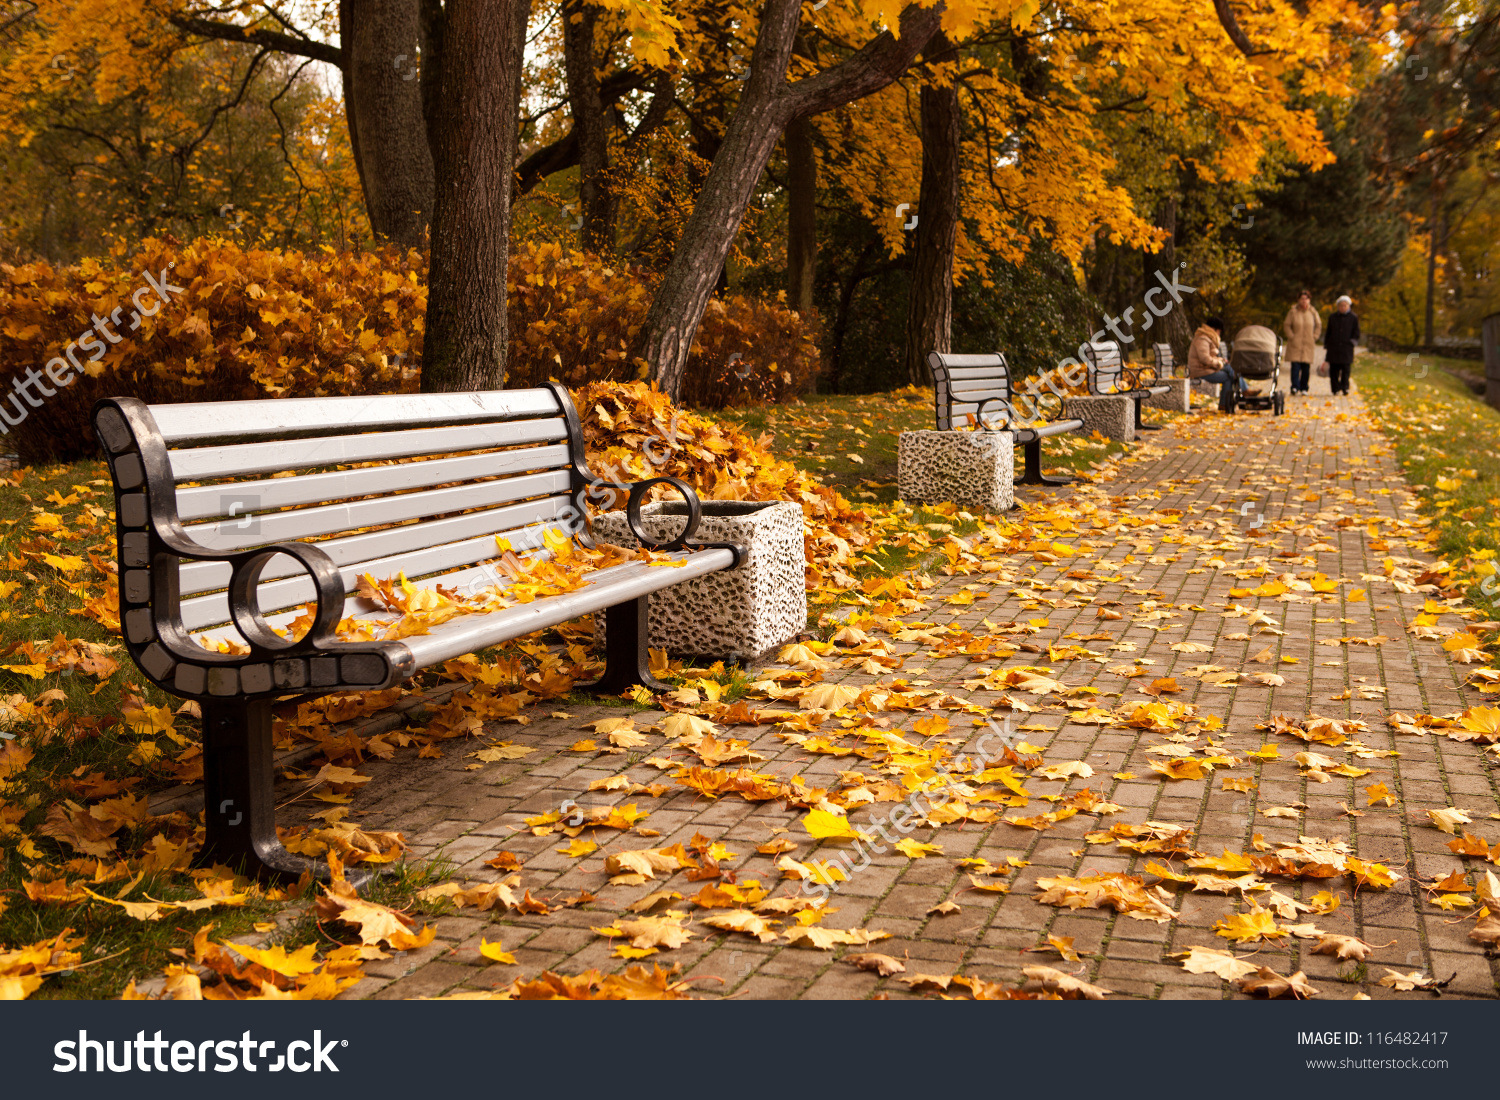 Perspective Row Benches Autumn Park While Stock Photo 116482417.